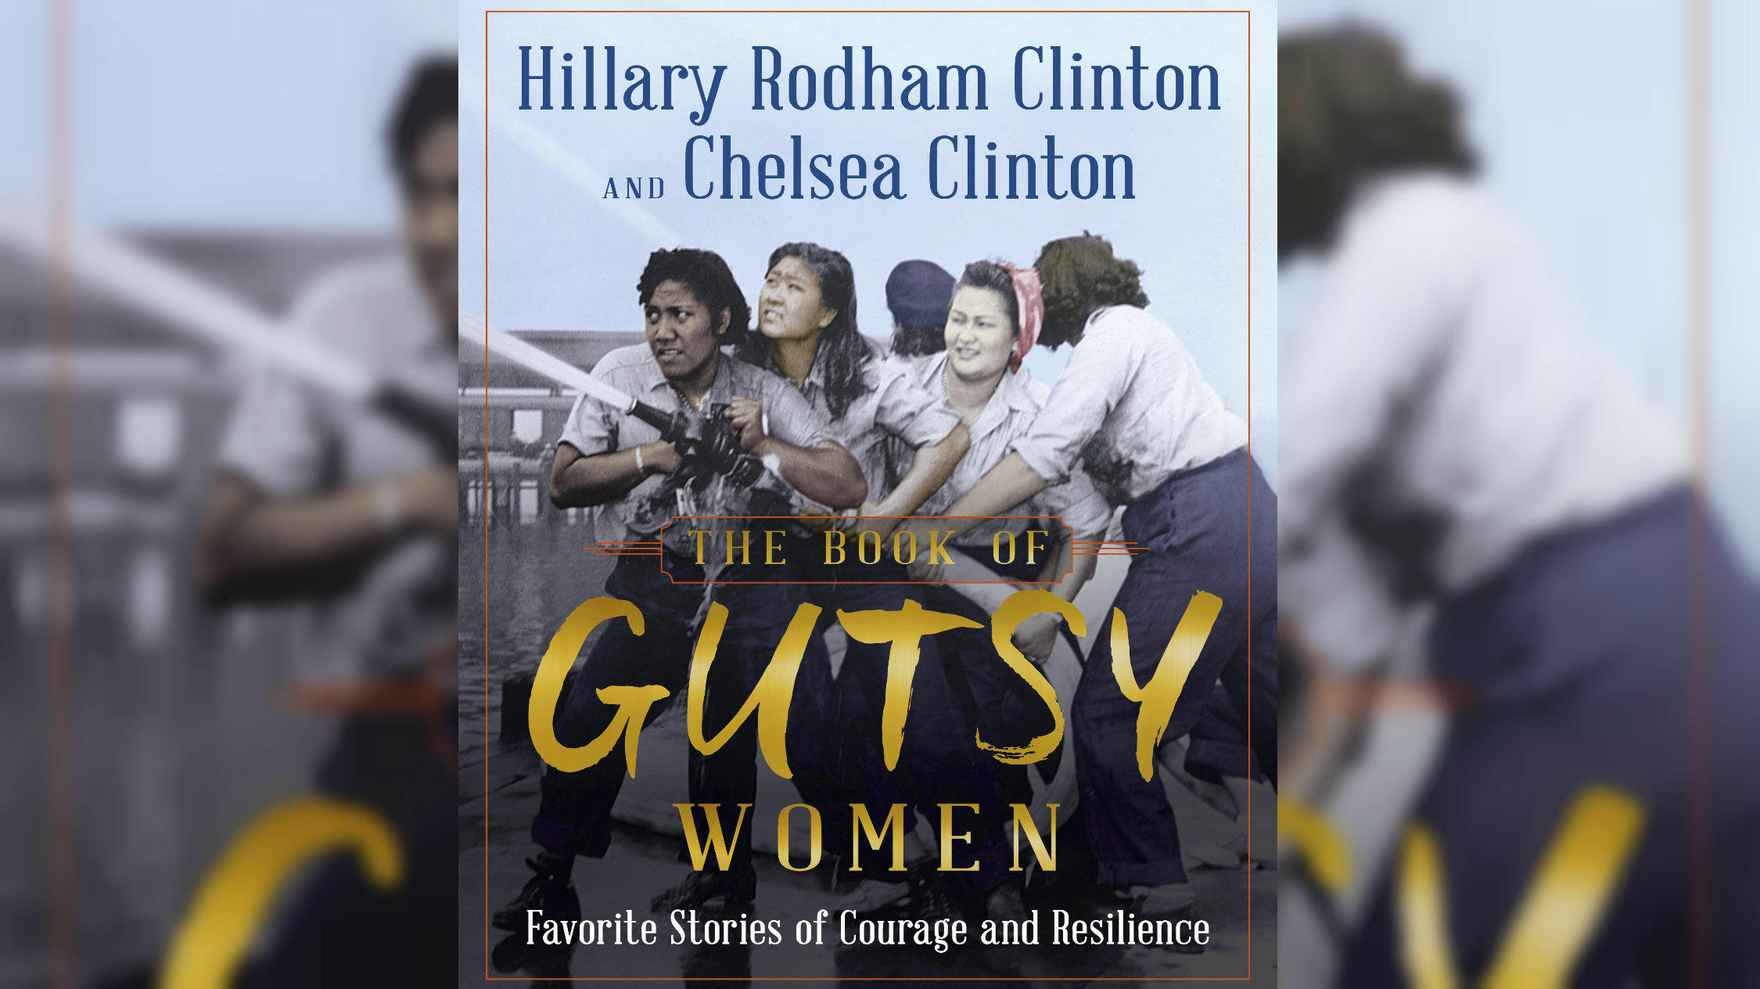 book-of-gutsy-women